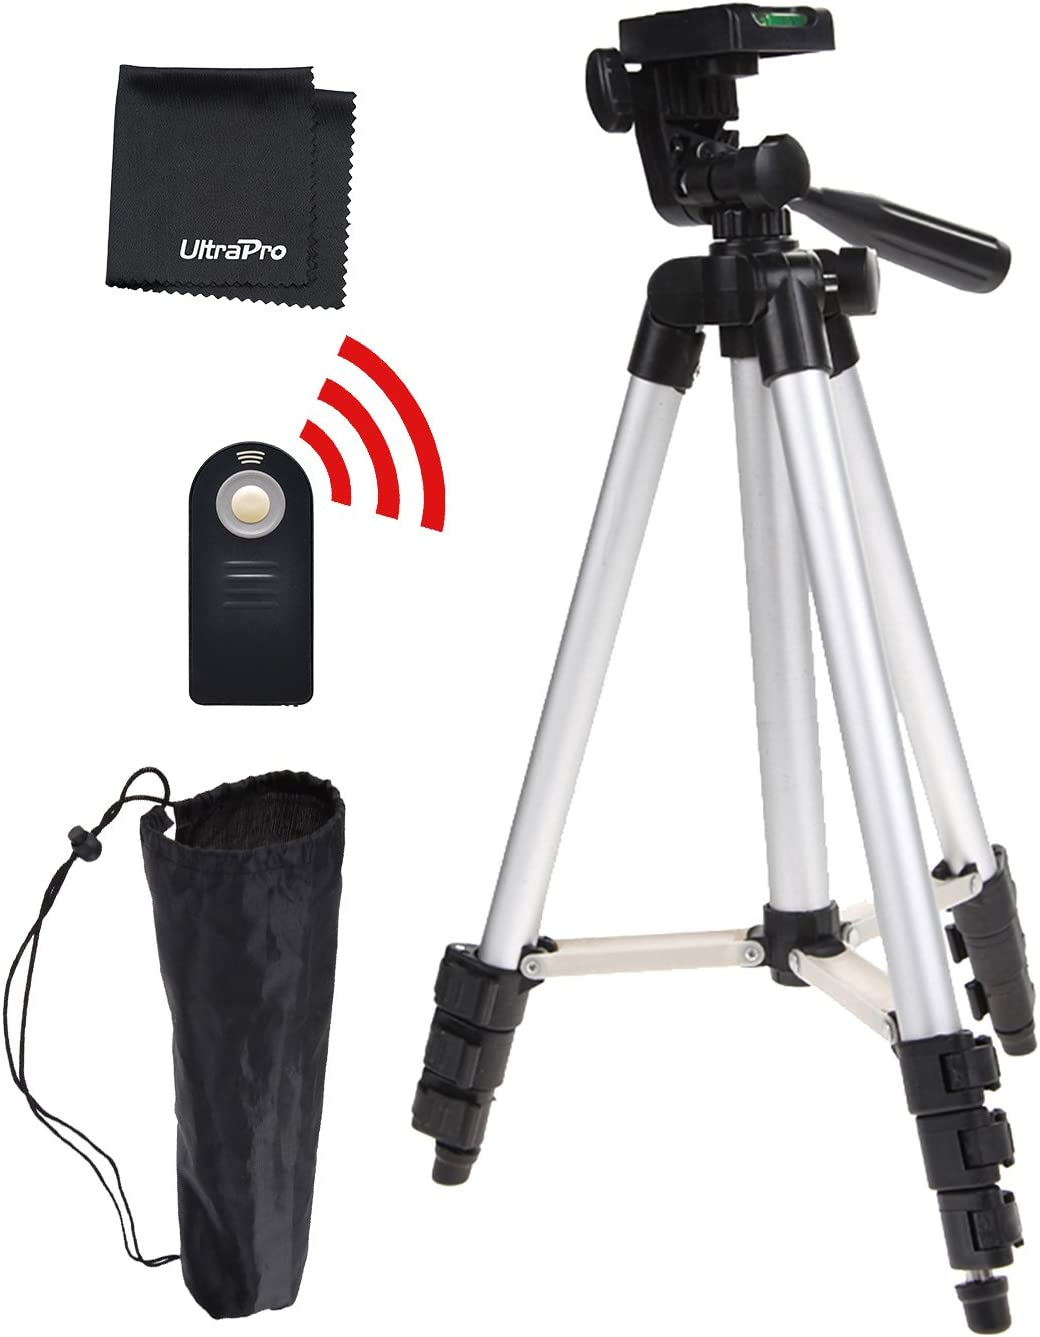 Wireless Remote Bundle for Canon Digital Cameras Includes UltraPro Bonus Microfiber Cleaning Cloth UltraPro 50 Inch Full Size Aluminum Camera Tripod